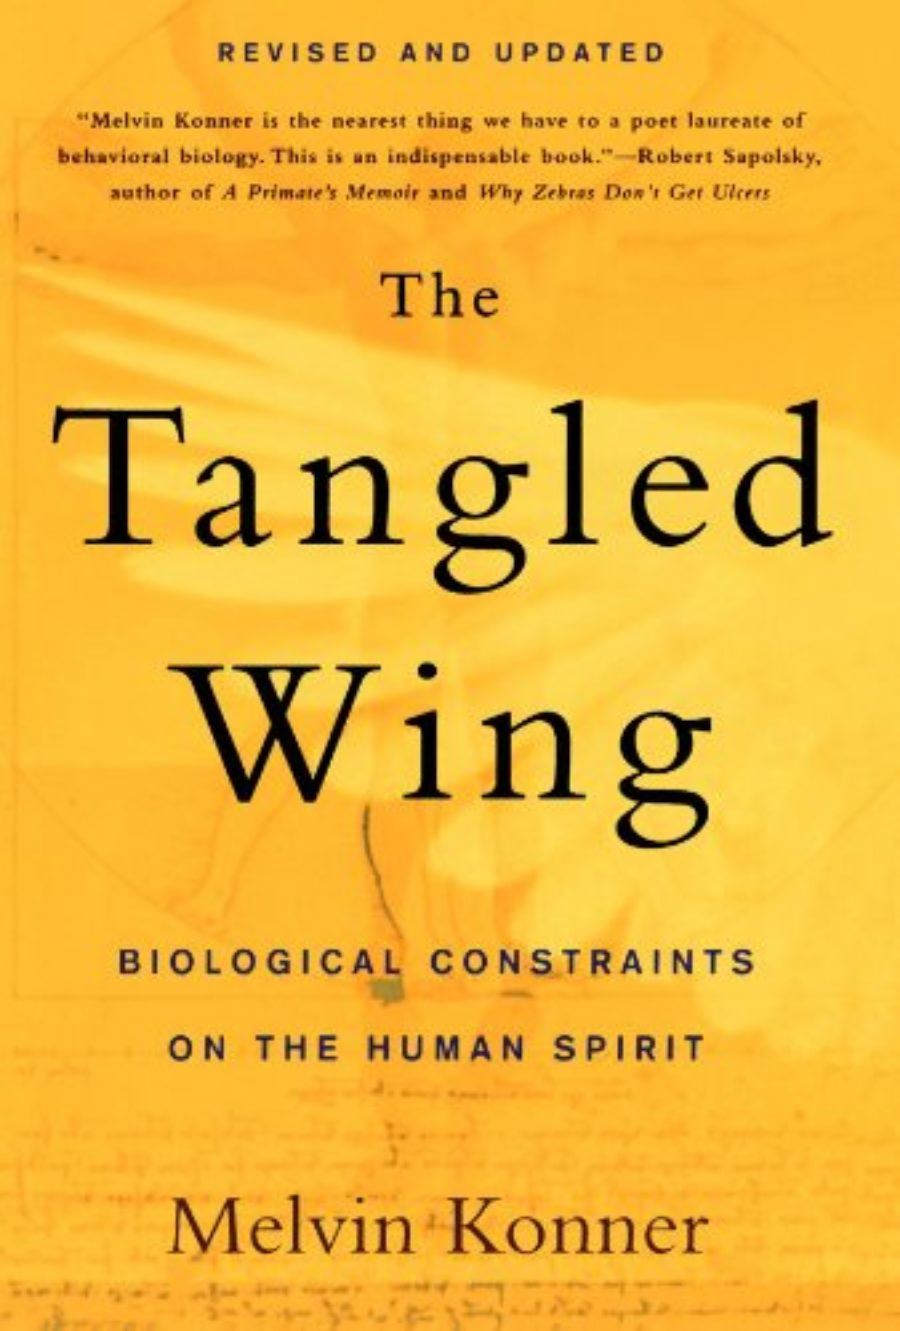 Cover of The Tangled Wing: Biological Constraints on the Human Spirit